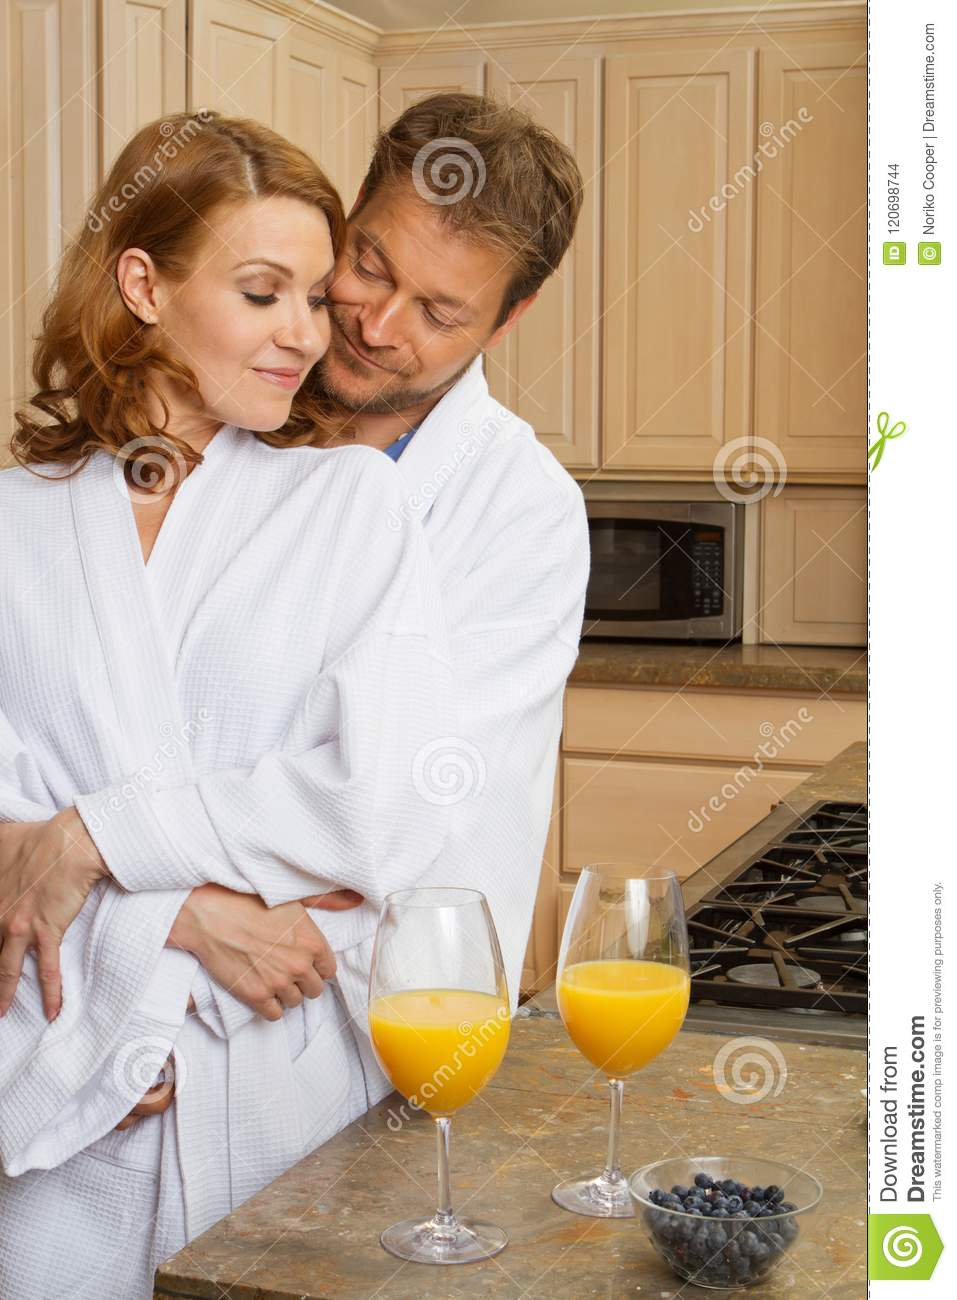 Cute Couple In Bath Robes Stock Photo Image Of Community 120698744